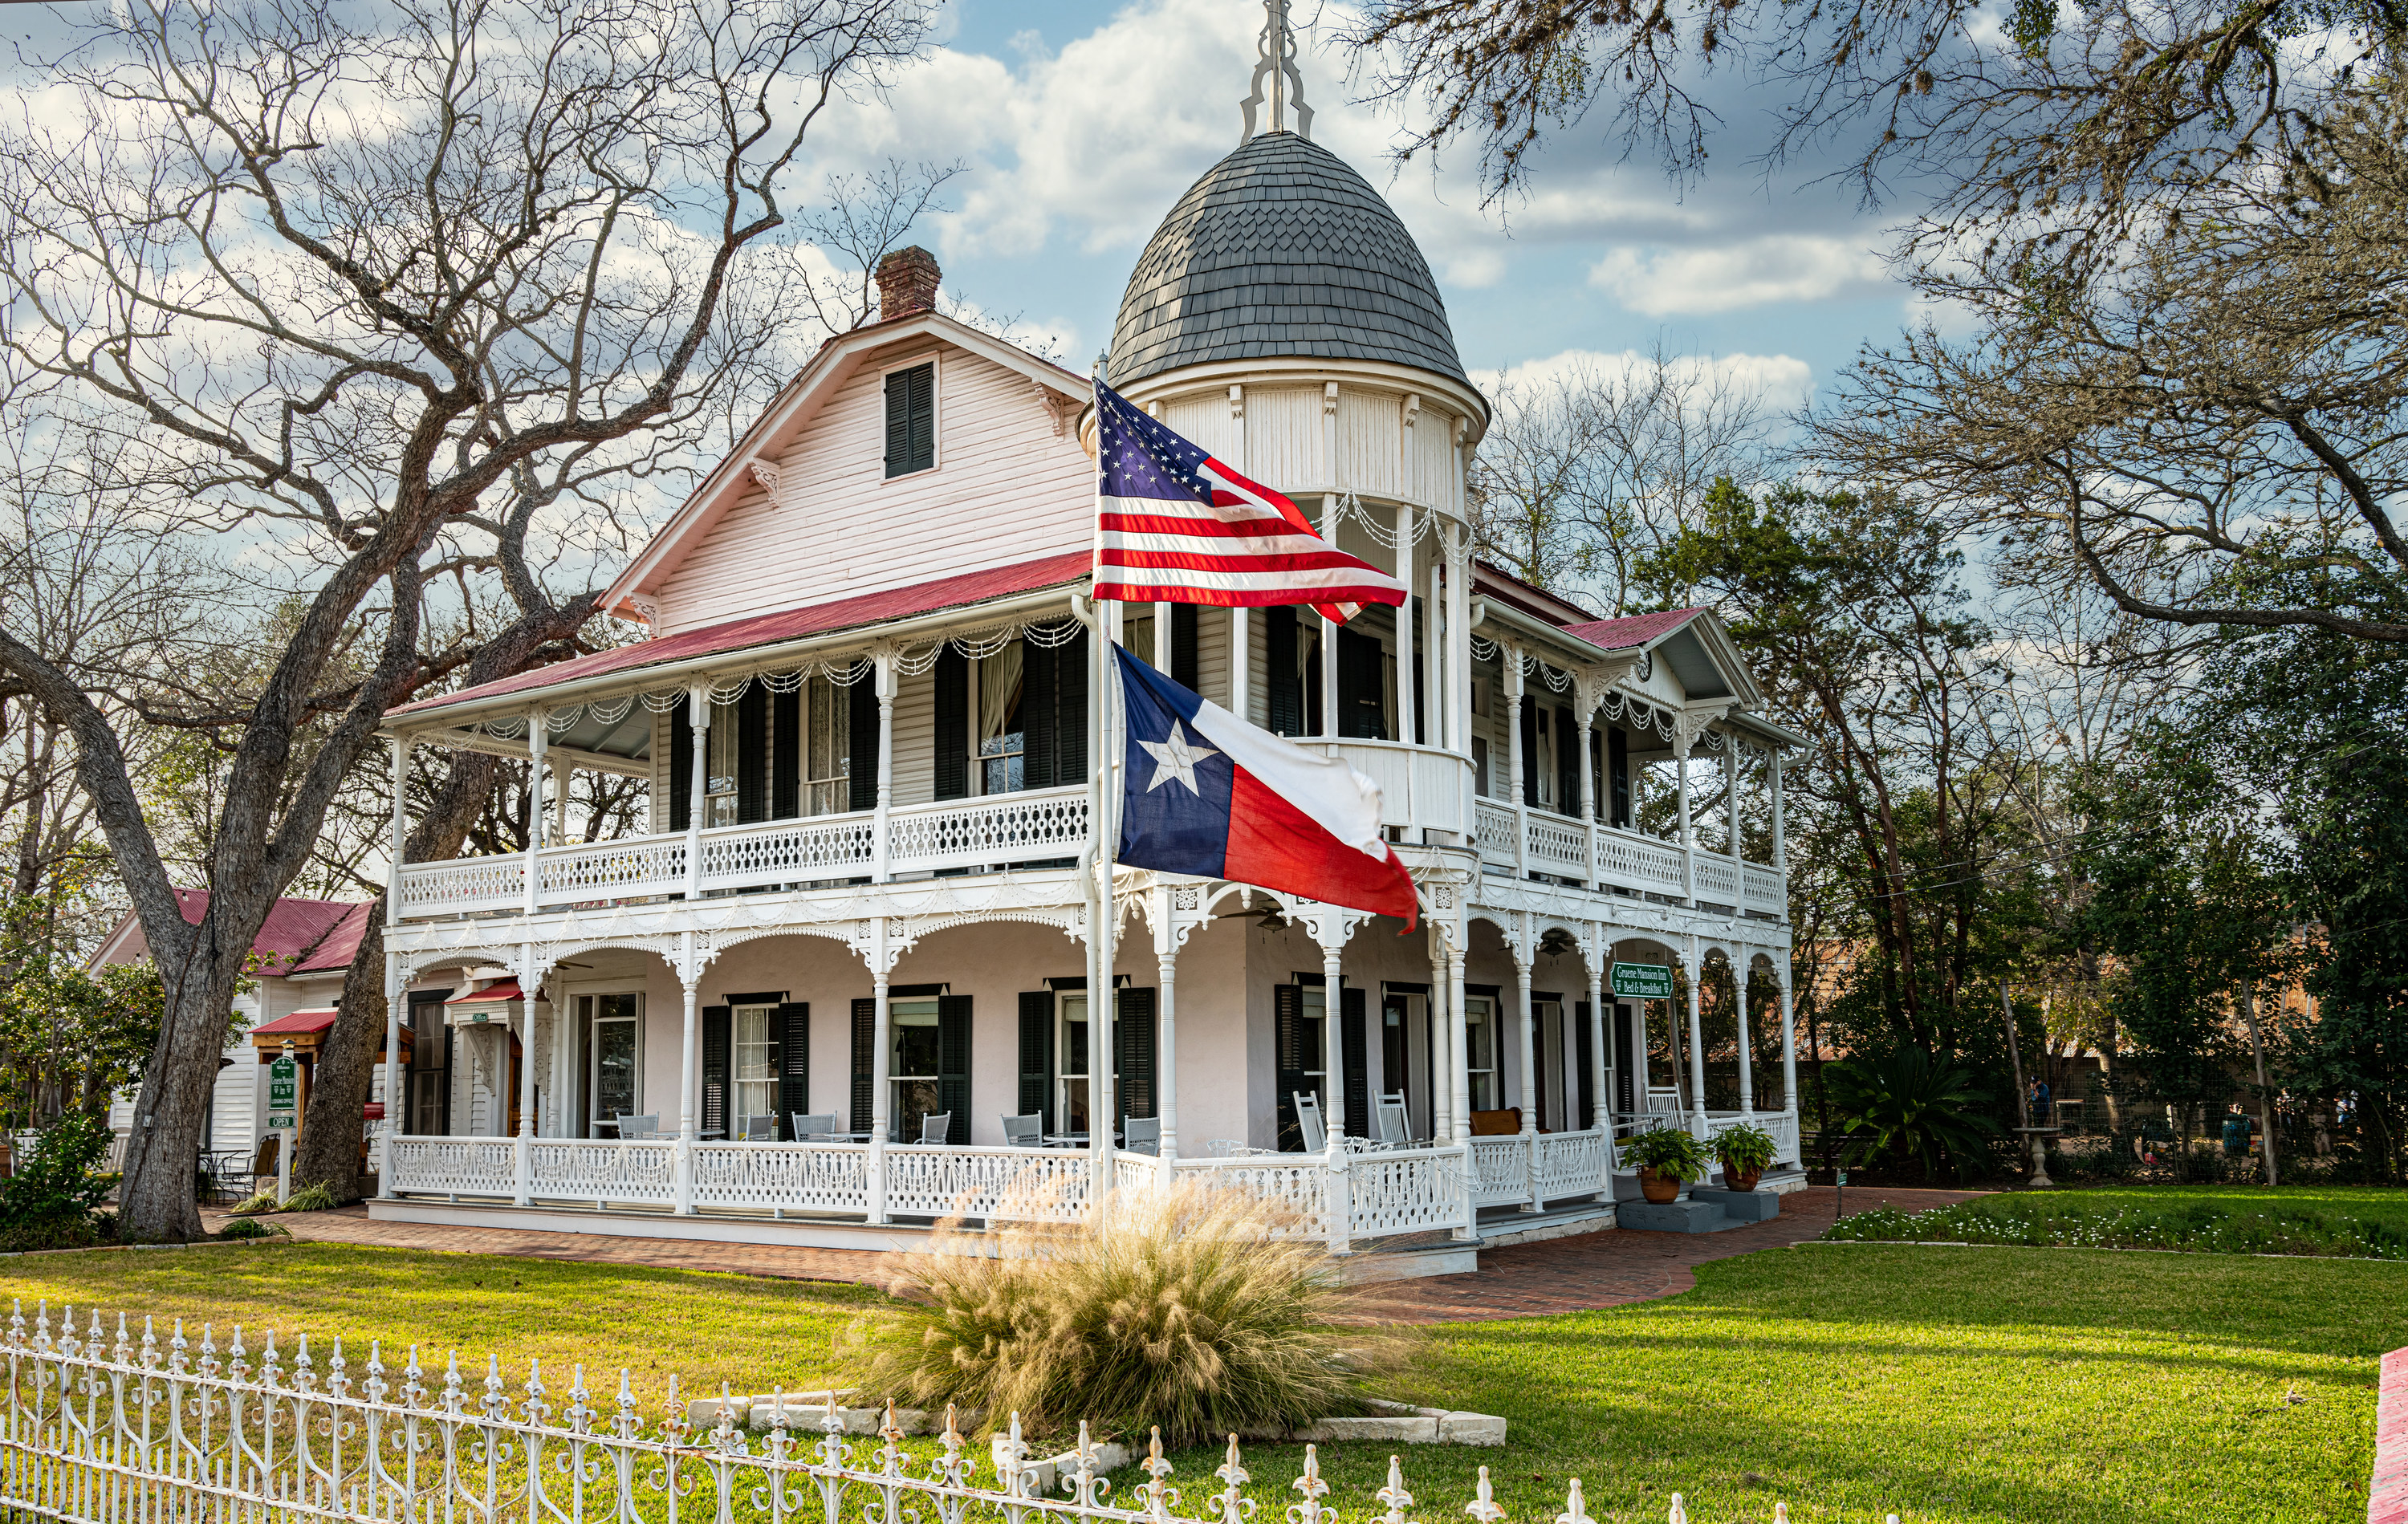 A grand white building in Gruene with the US and Texas flags flying in front